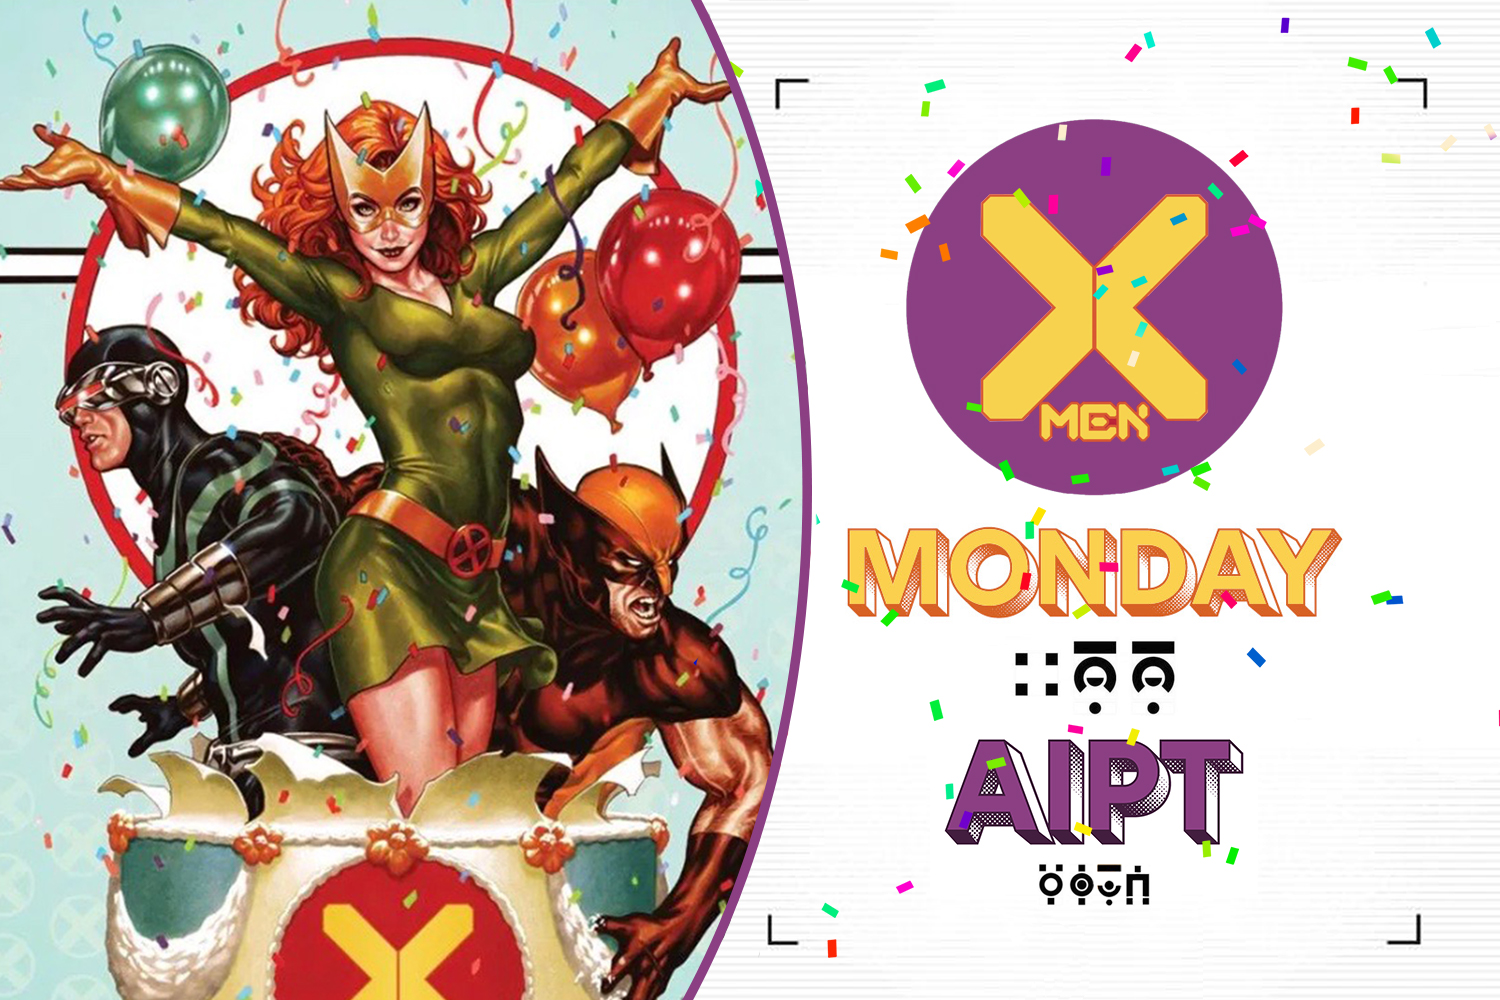 Welcome, X-Fans, to an edition of X-Men Monday at AIPT that's more than uncanny...